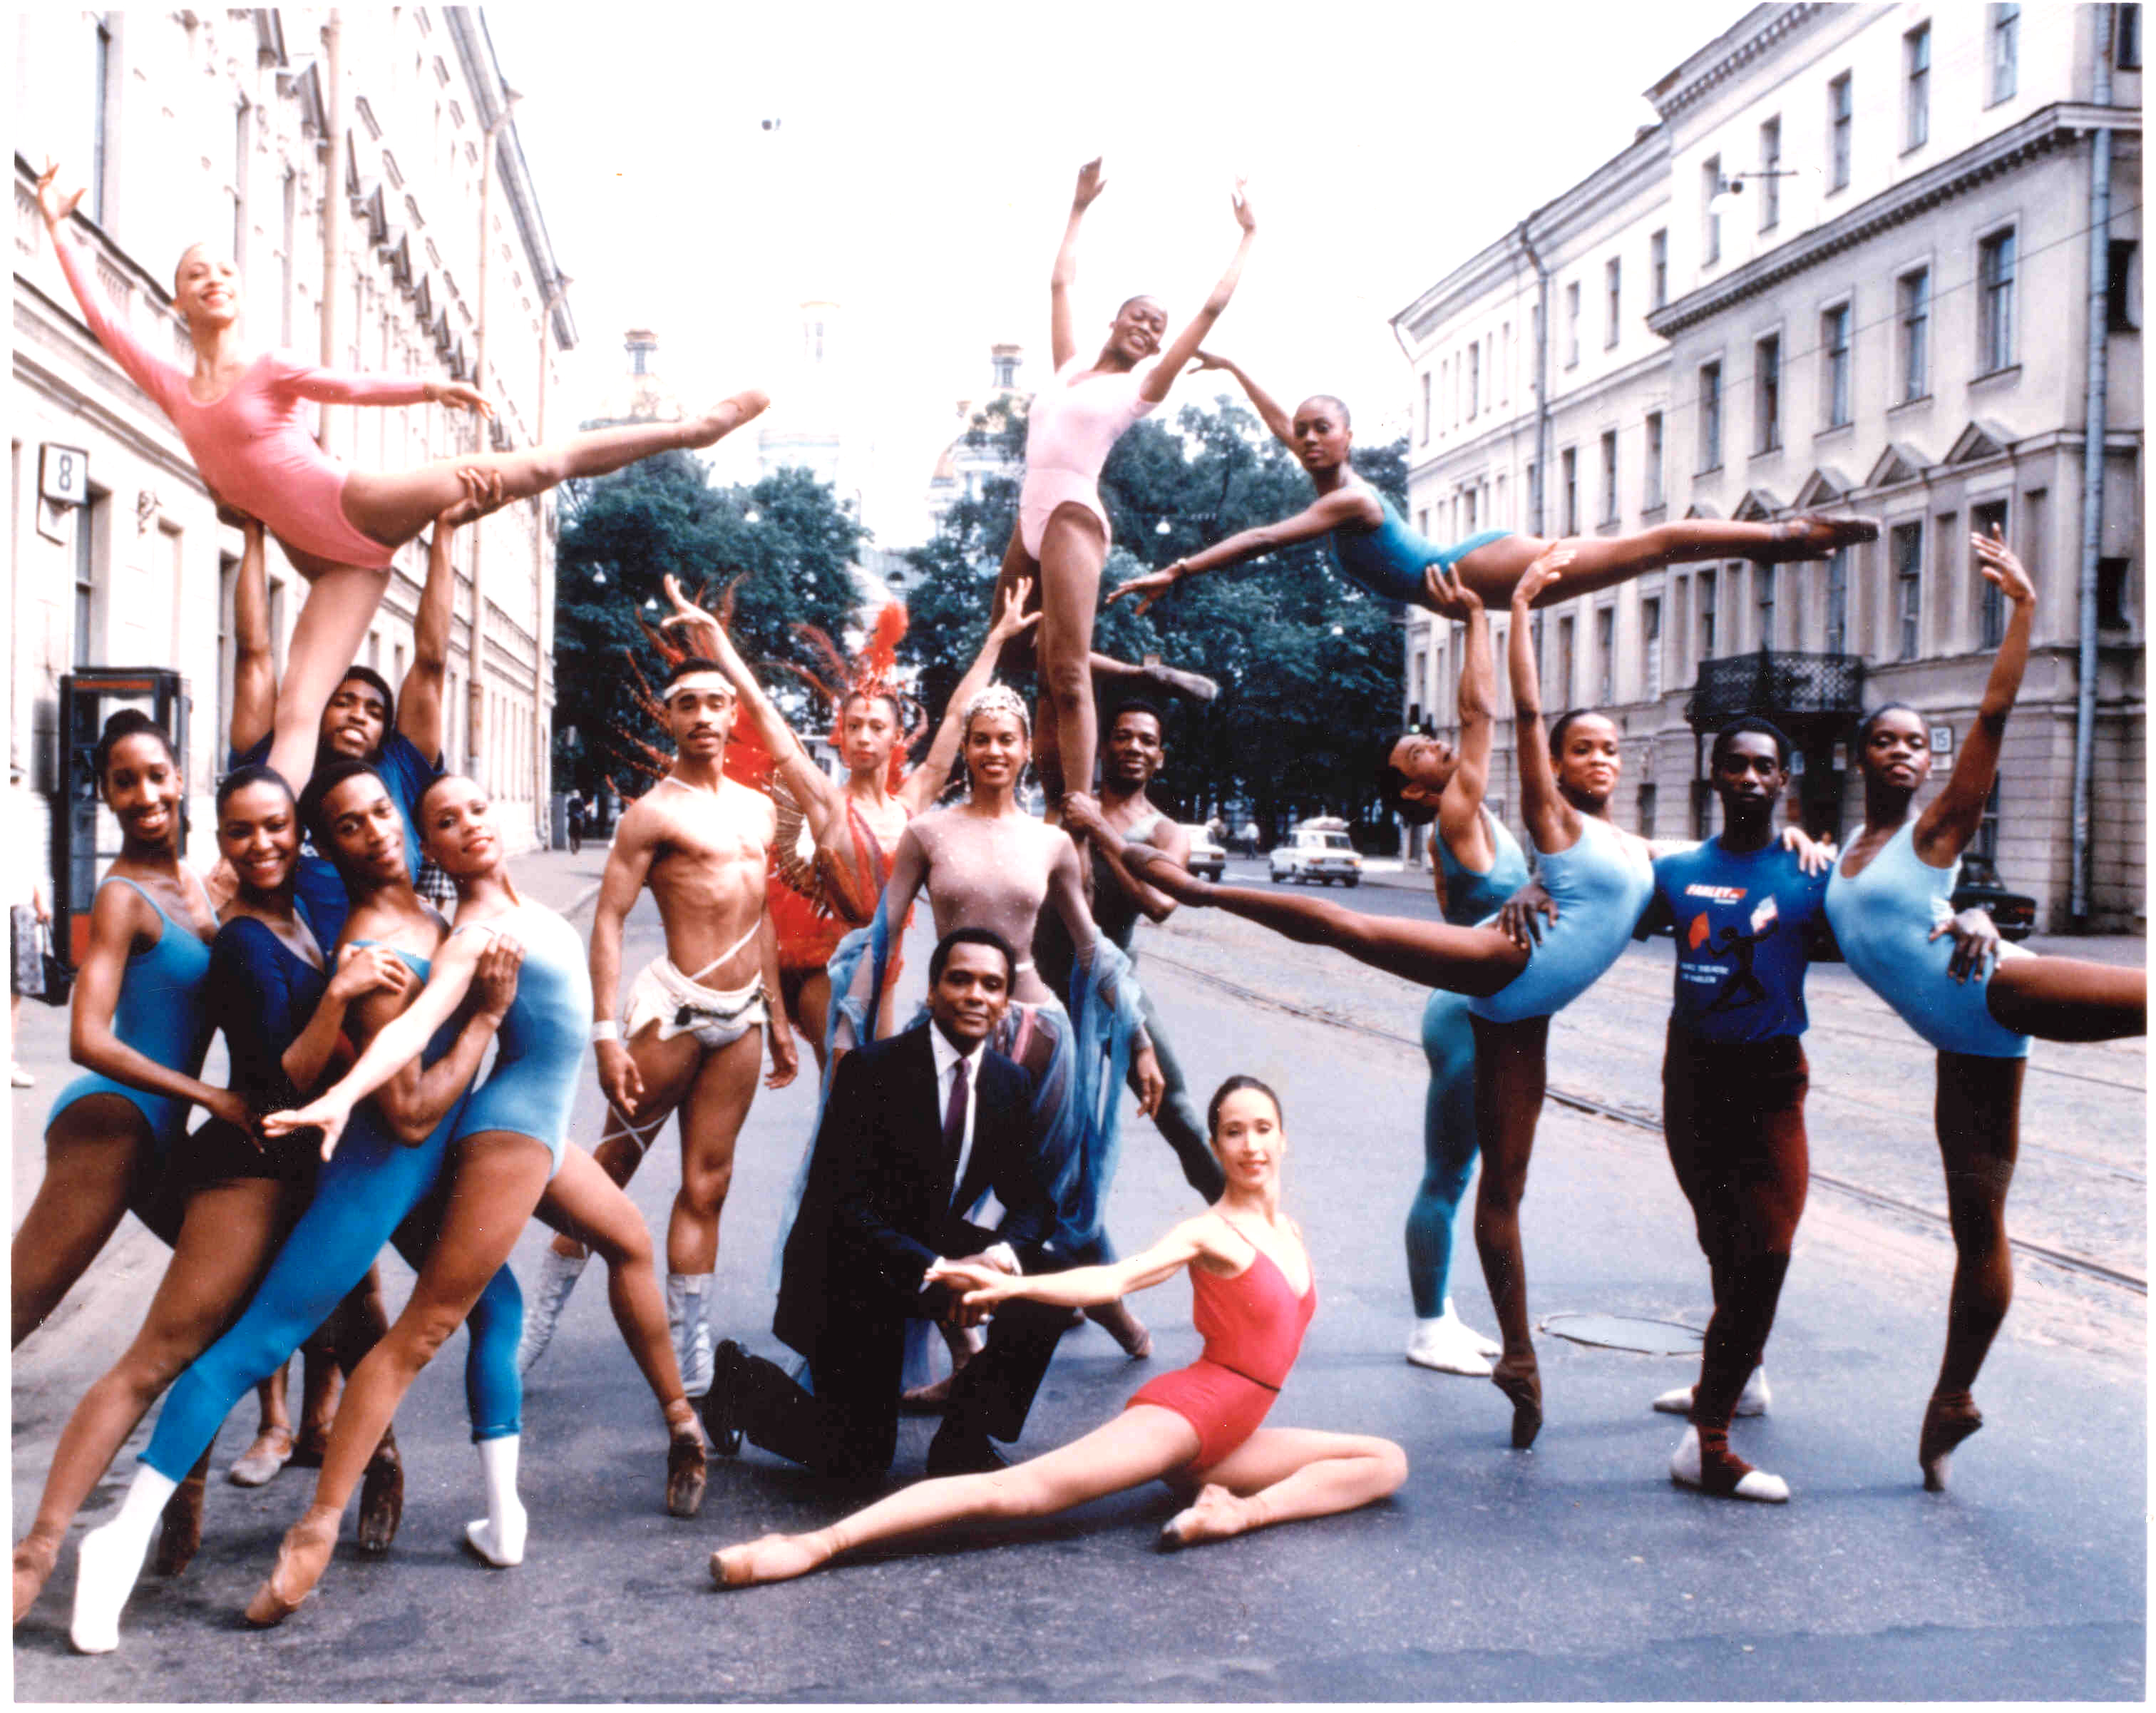 The Dance Theatre of Harlem Company